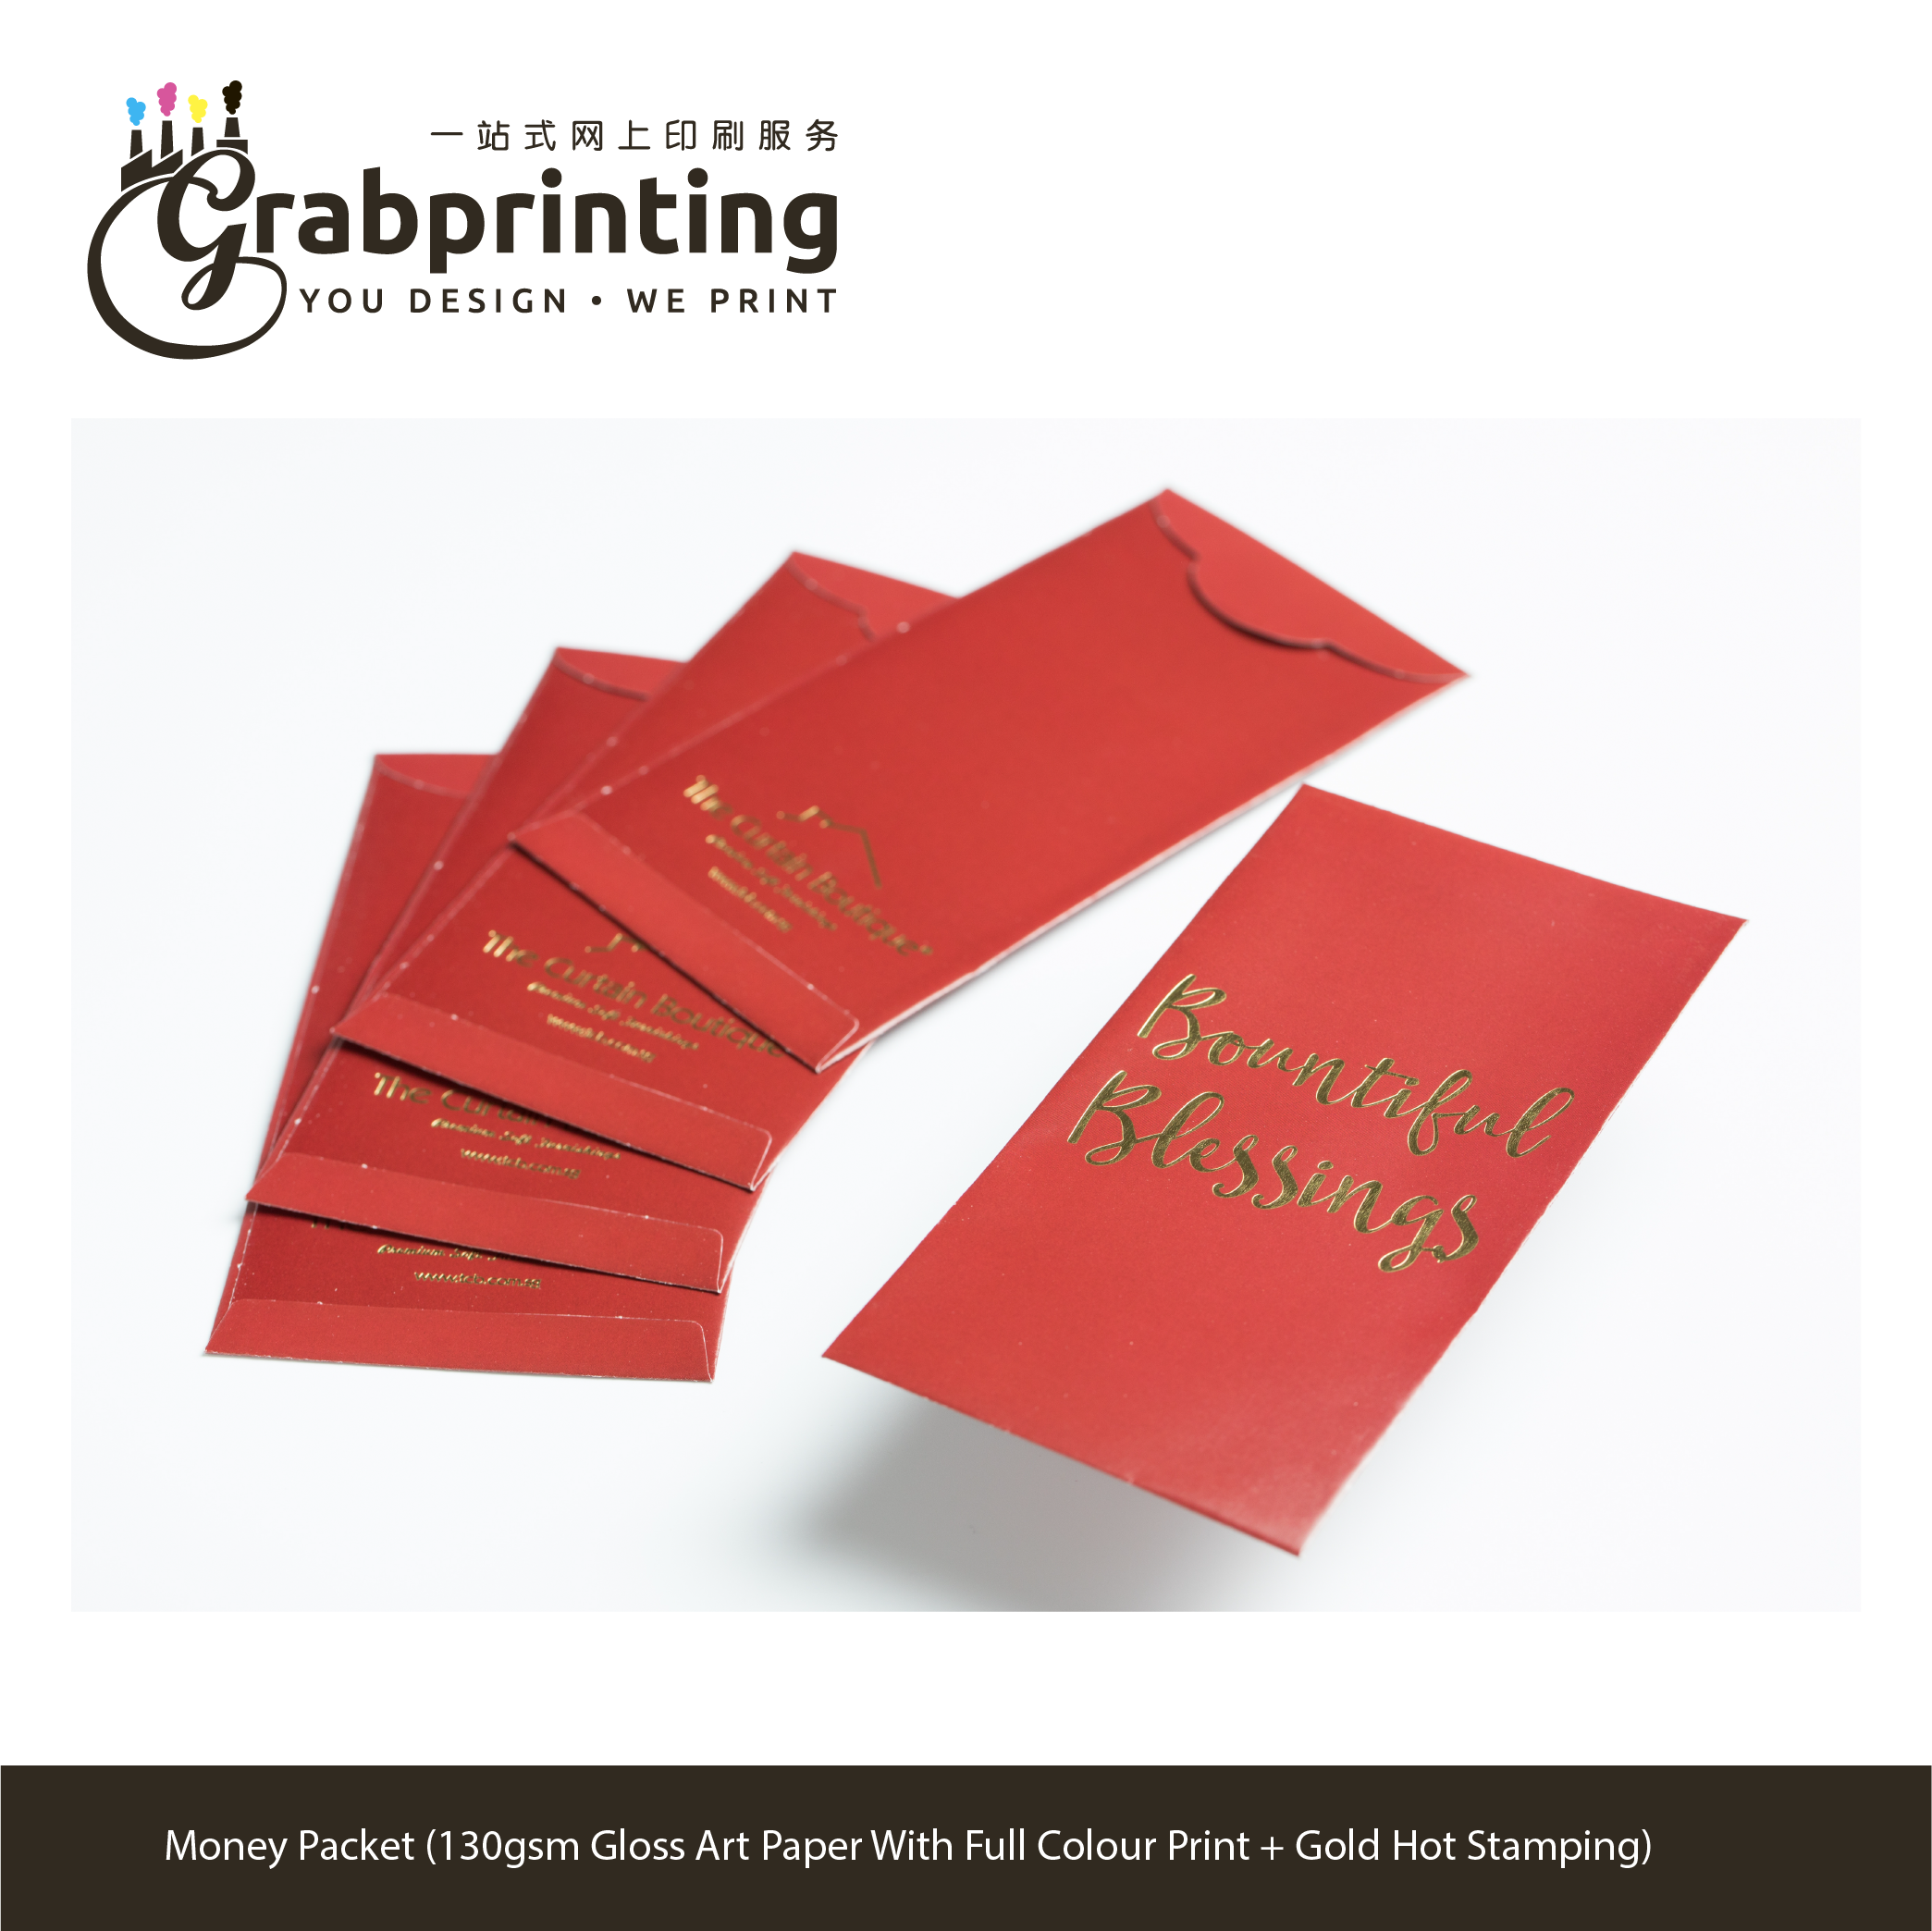 money packet printing Money Packet 130gsm Gloss Art Paper grabprinting 04Money Packet 130gsm Gloss Art Paper With Full Colour Print Gold Hot Stamping 501px 501px